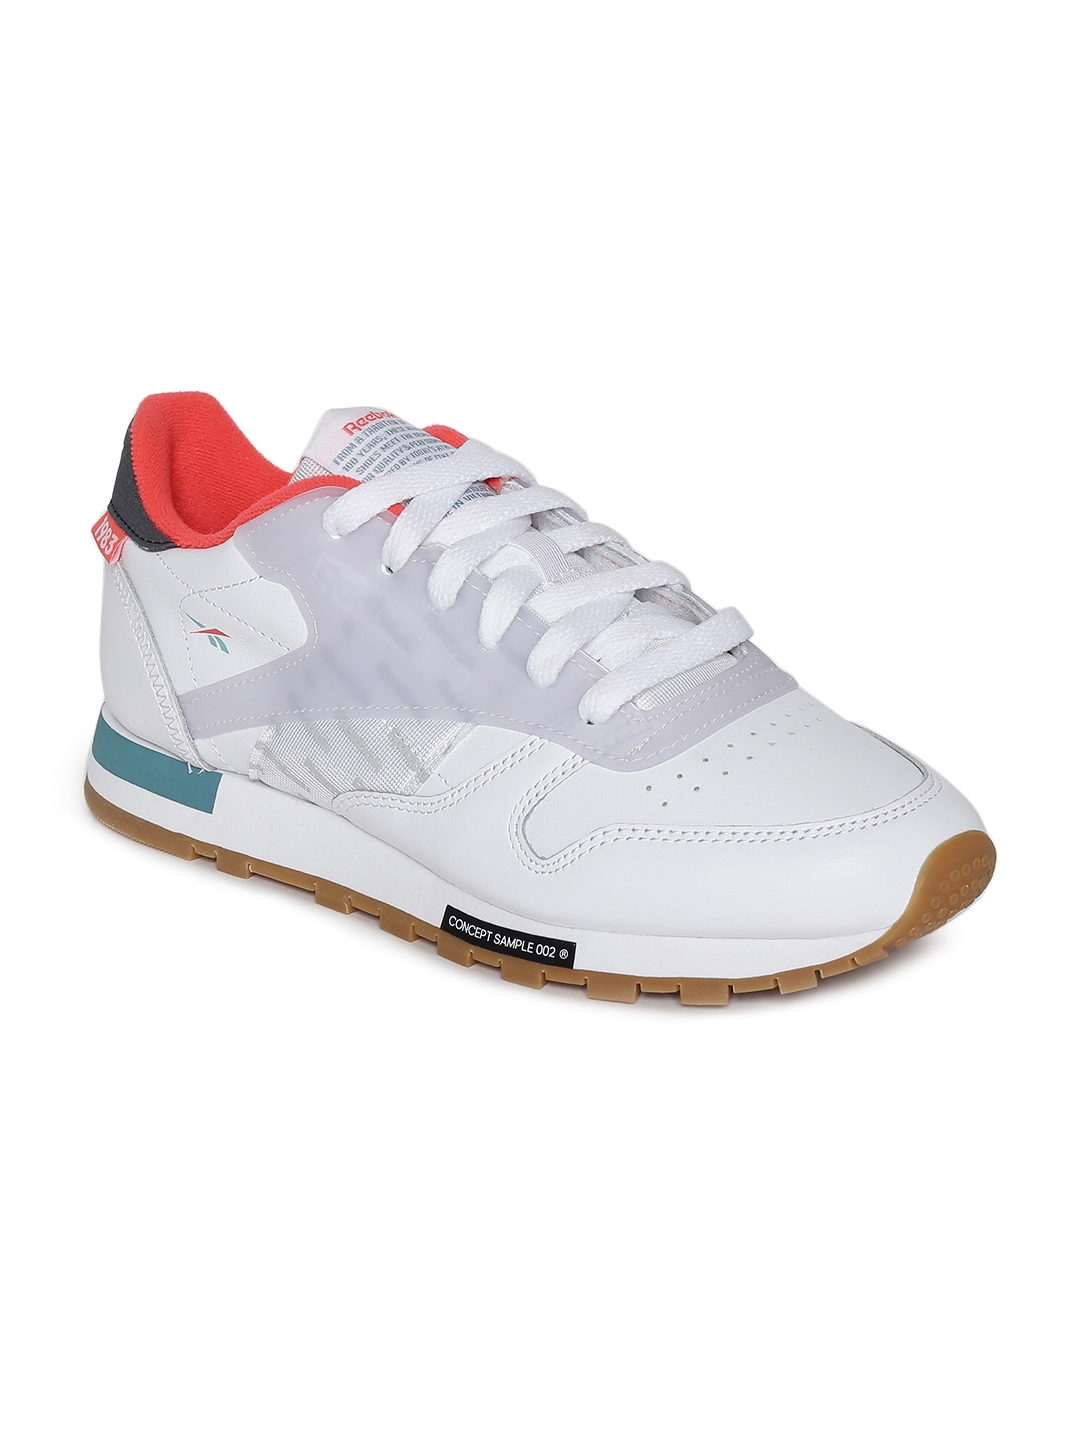 d3654bfd167 Buy Reebok Classic Unisex White CL Leather ATI Perforated Sneakers ...